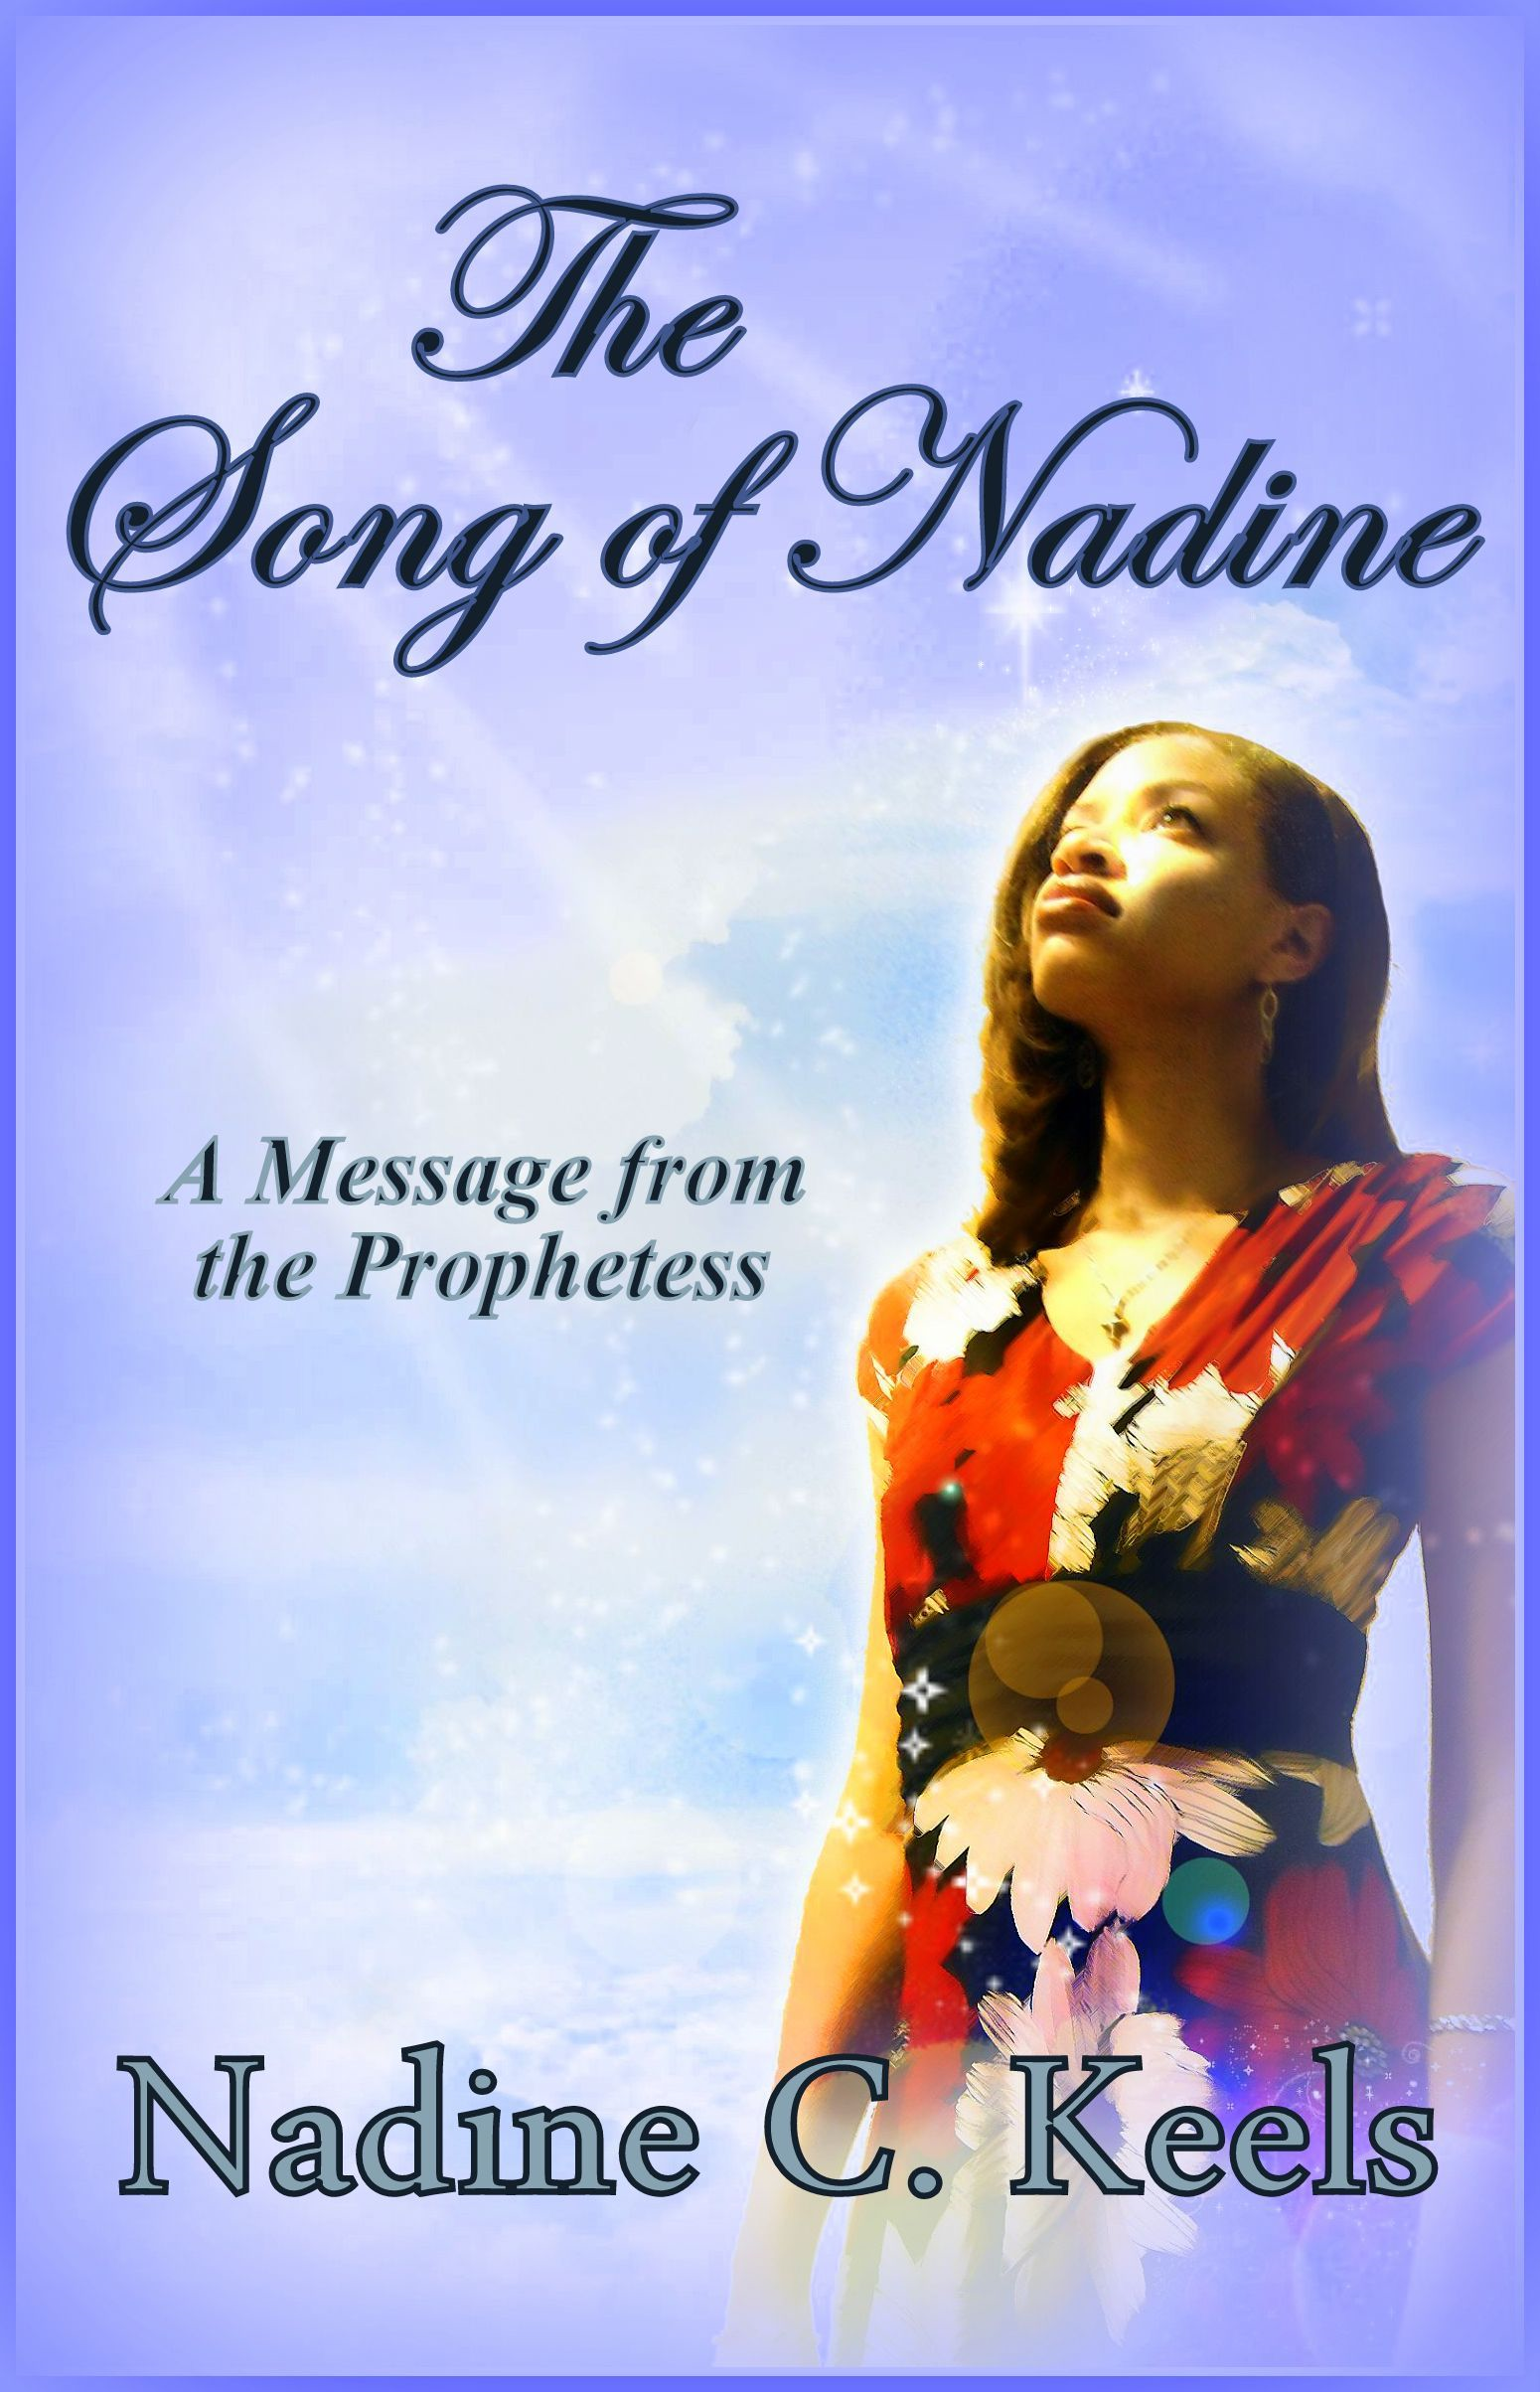 The Song of Nadine